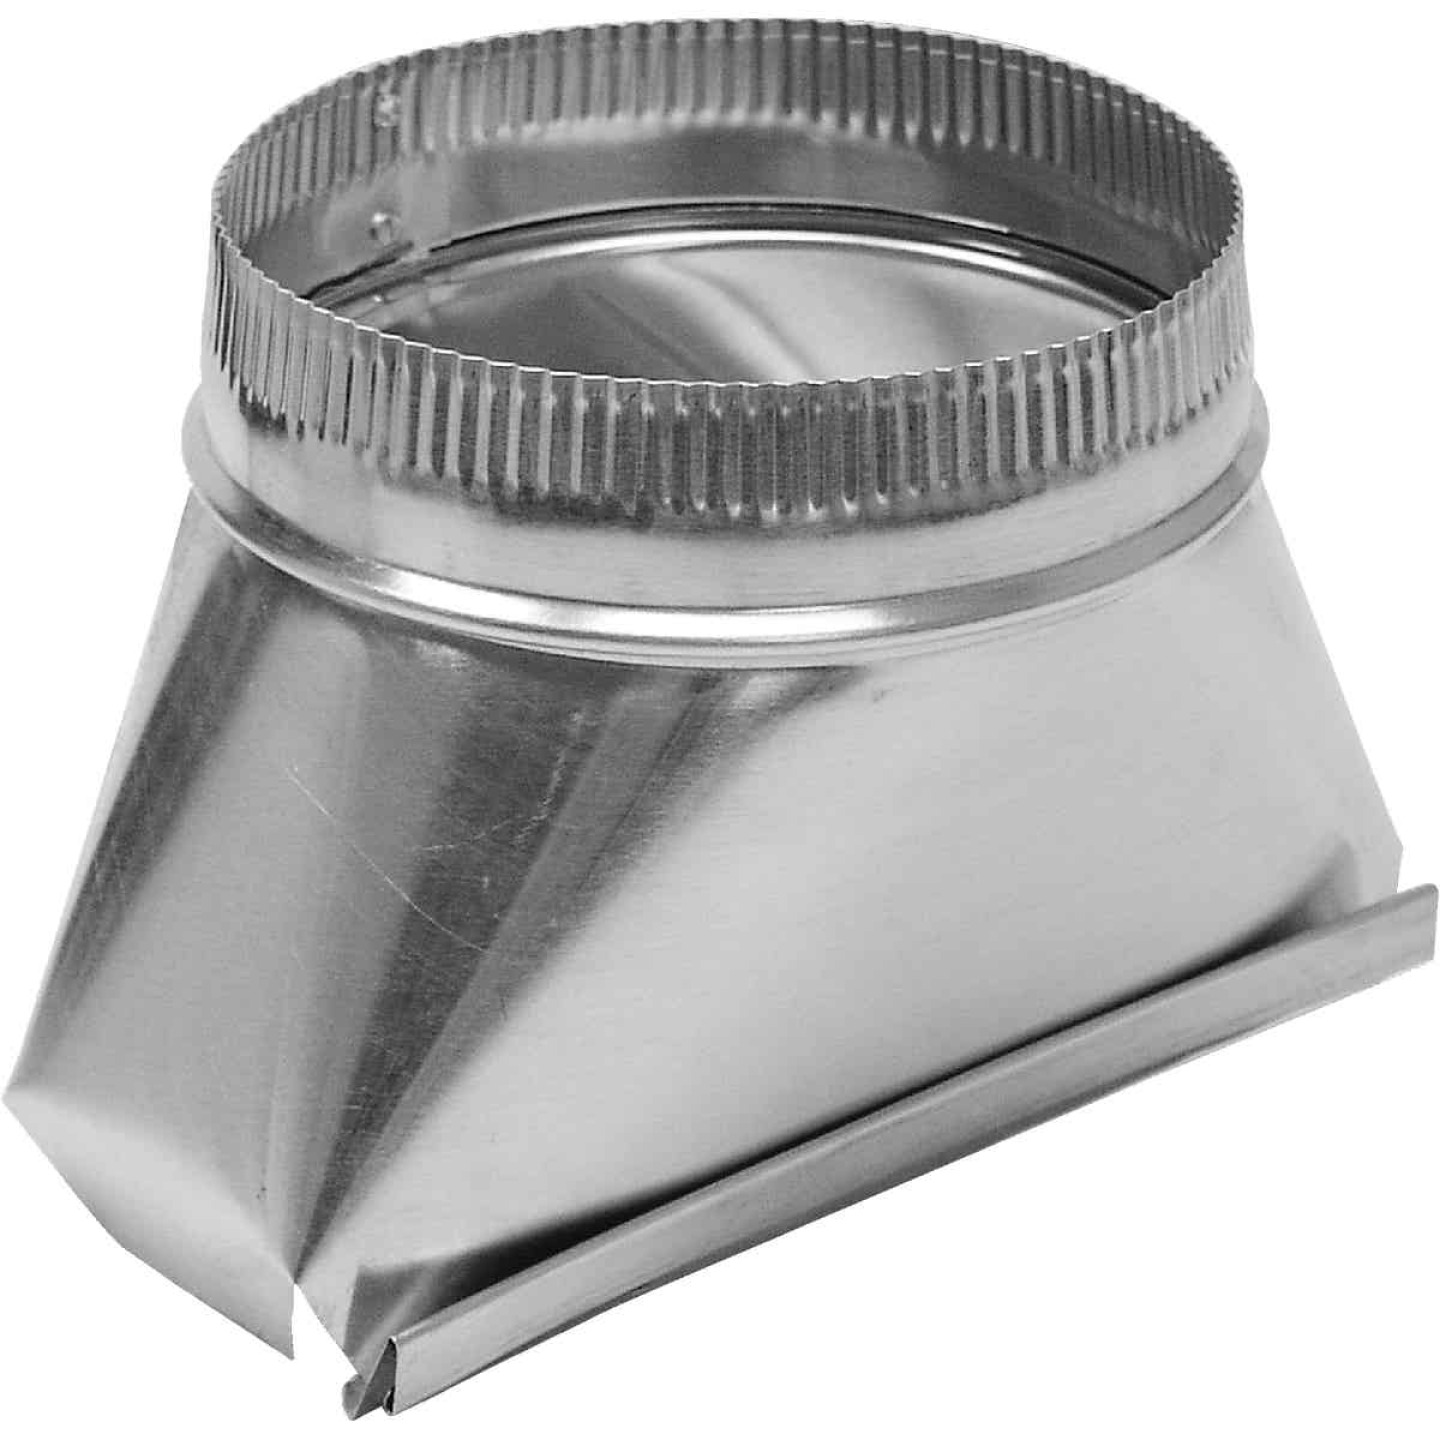 Lambro 7 In. Galvanized Standard Round Transition Boot Image 1